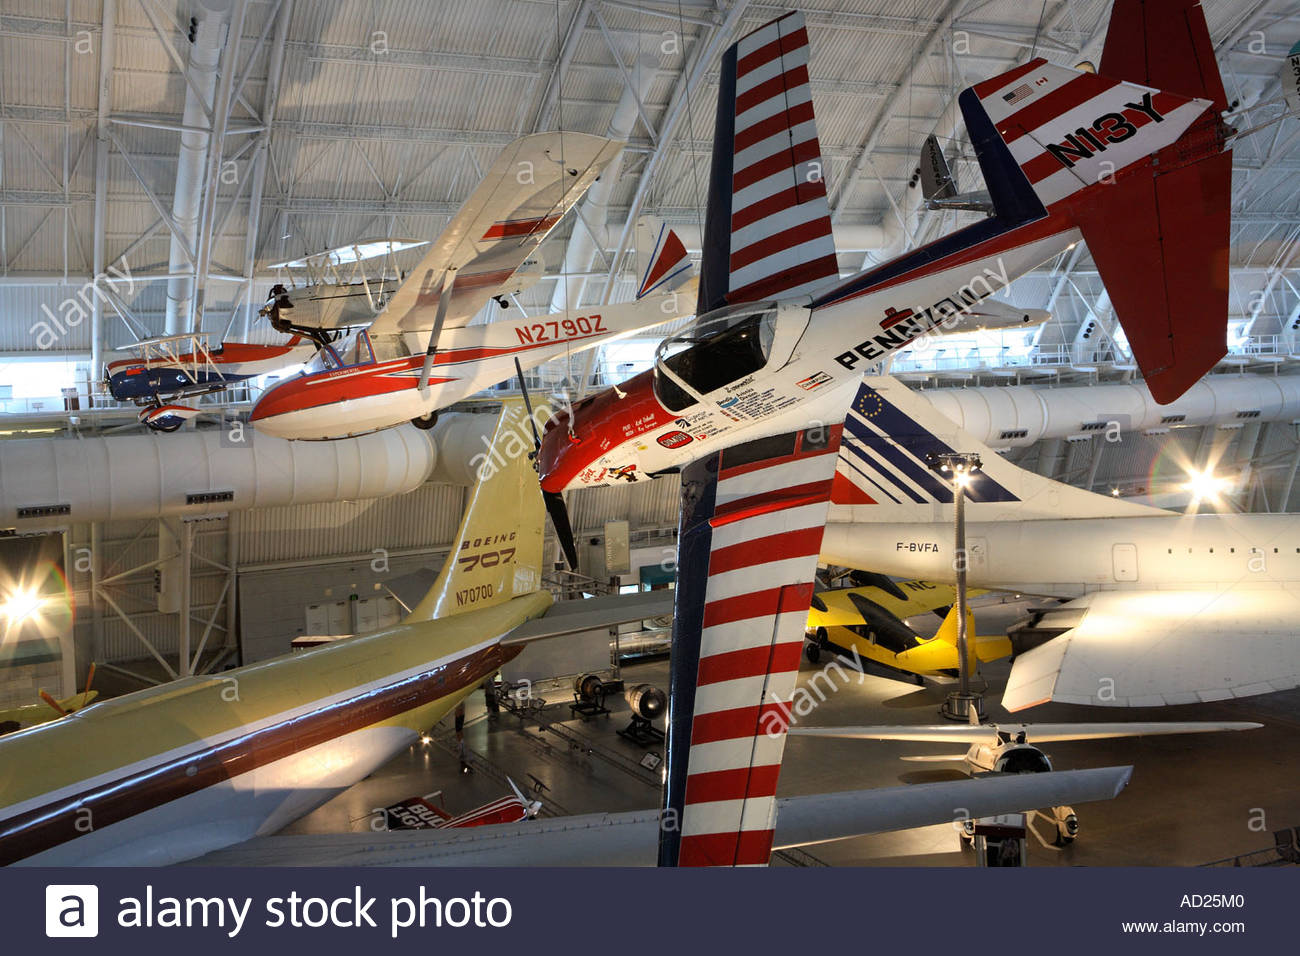 Pennzoil Special and de Havilland DHC-1A aircraft on display at the Steven Udvar-Hazy Center. - Stock Image